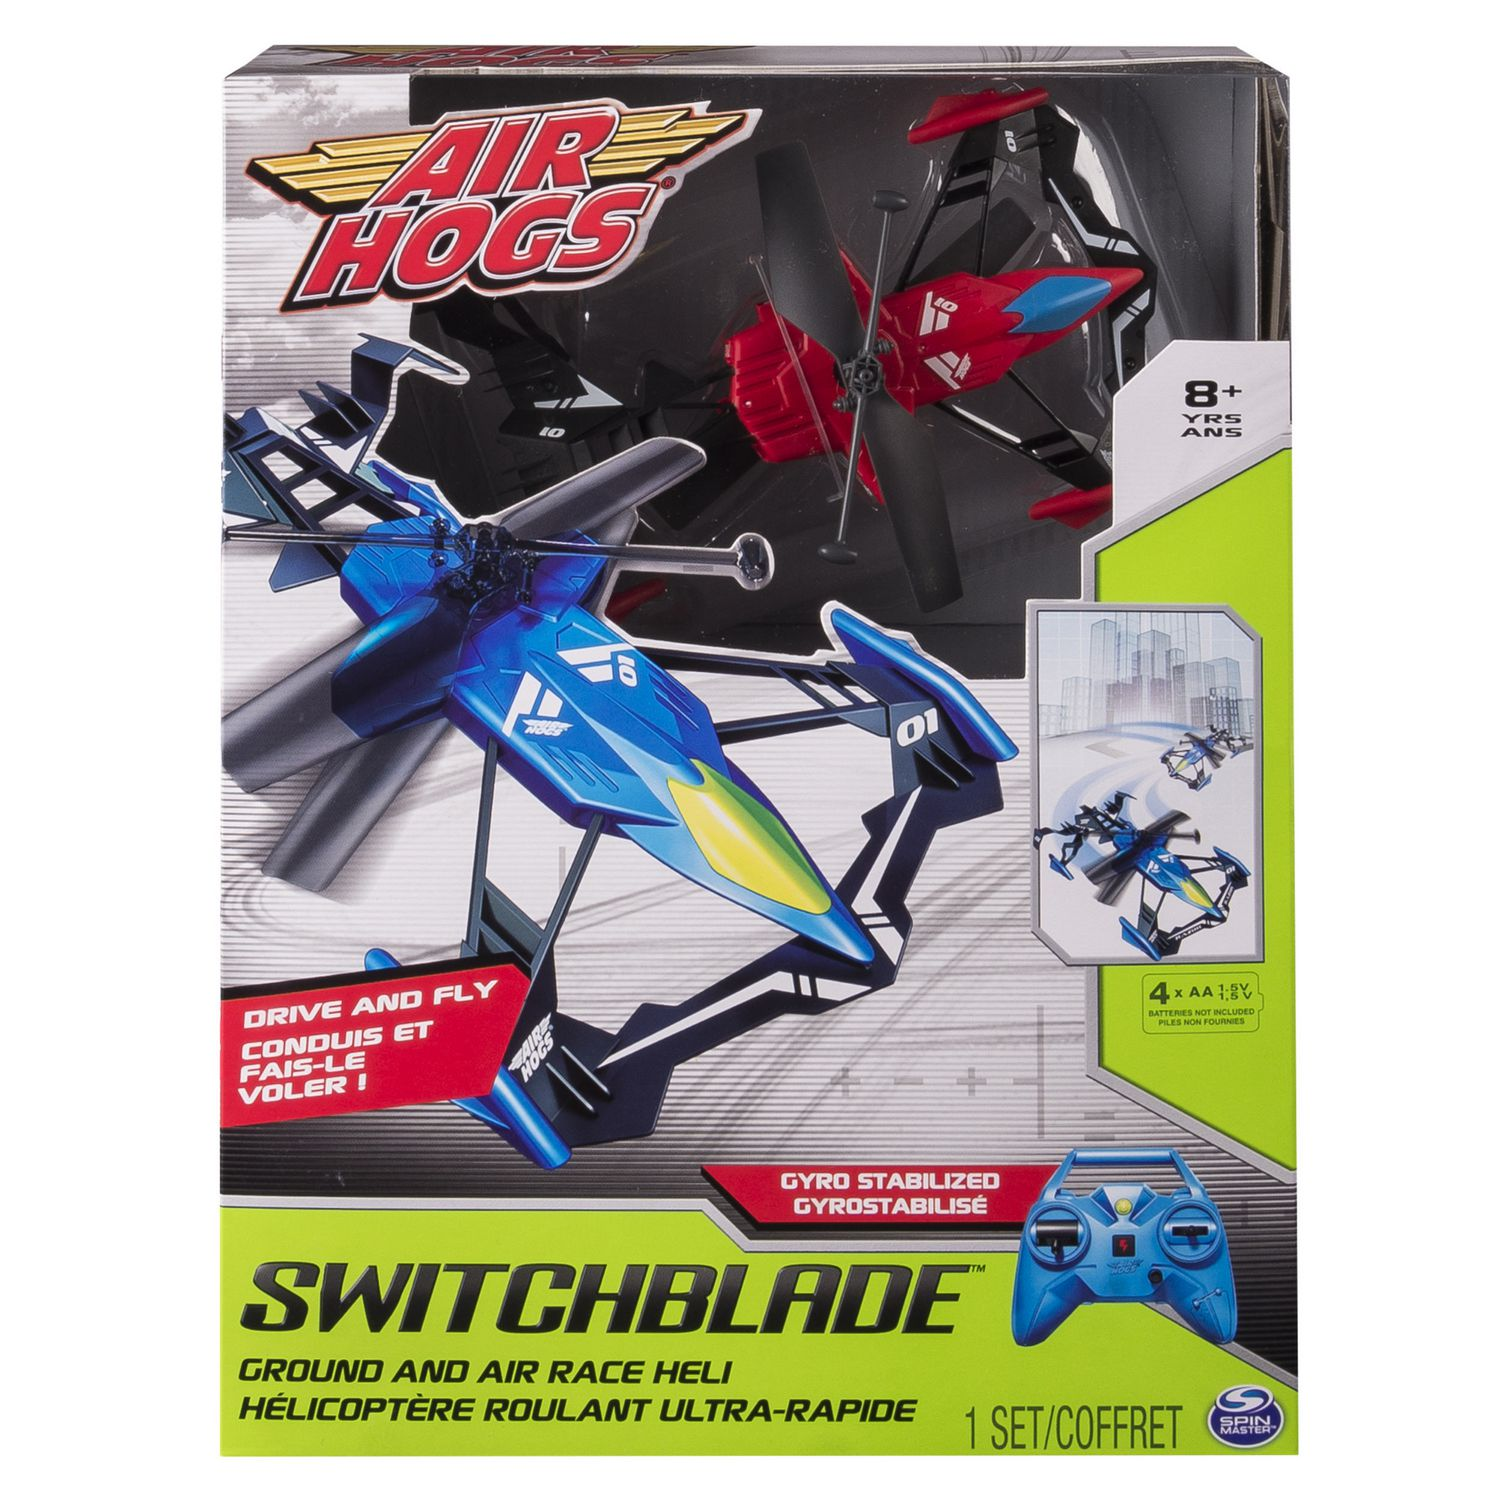 Air Hogs Switchblade Ground And Race Red RC Helicopter